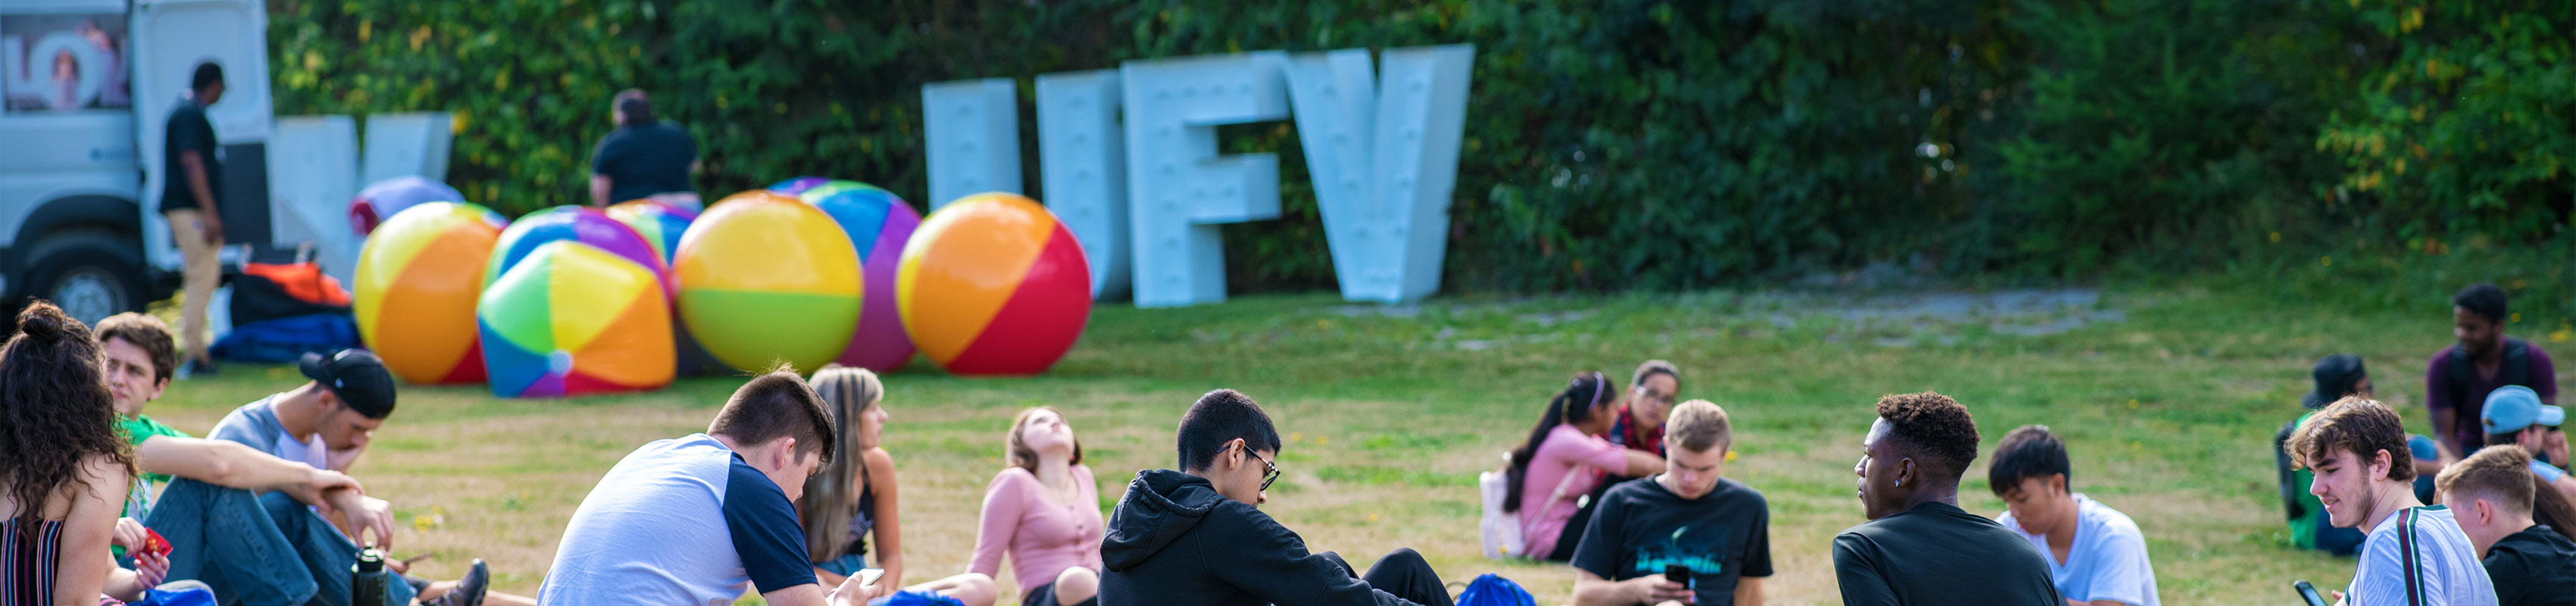 Group of students sitting on the grass on campus in front of colorful balloons and the UFV letters